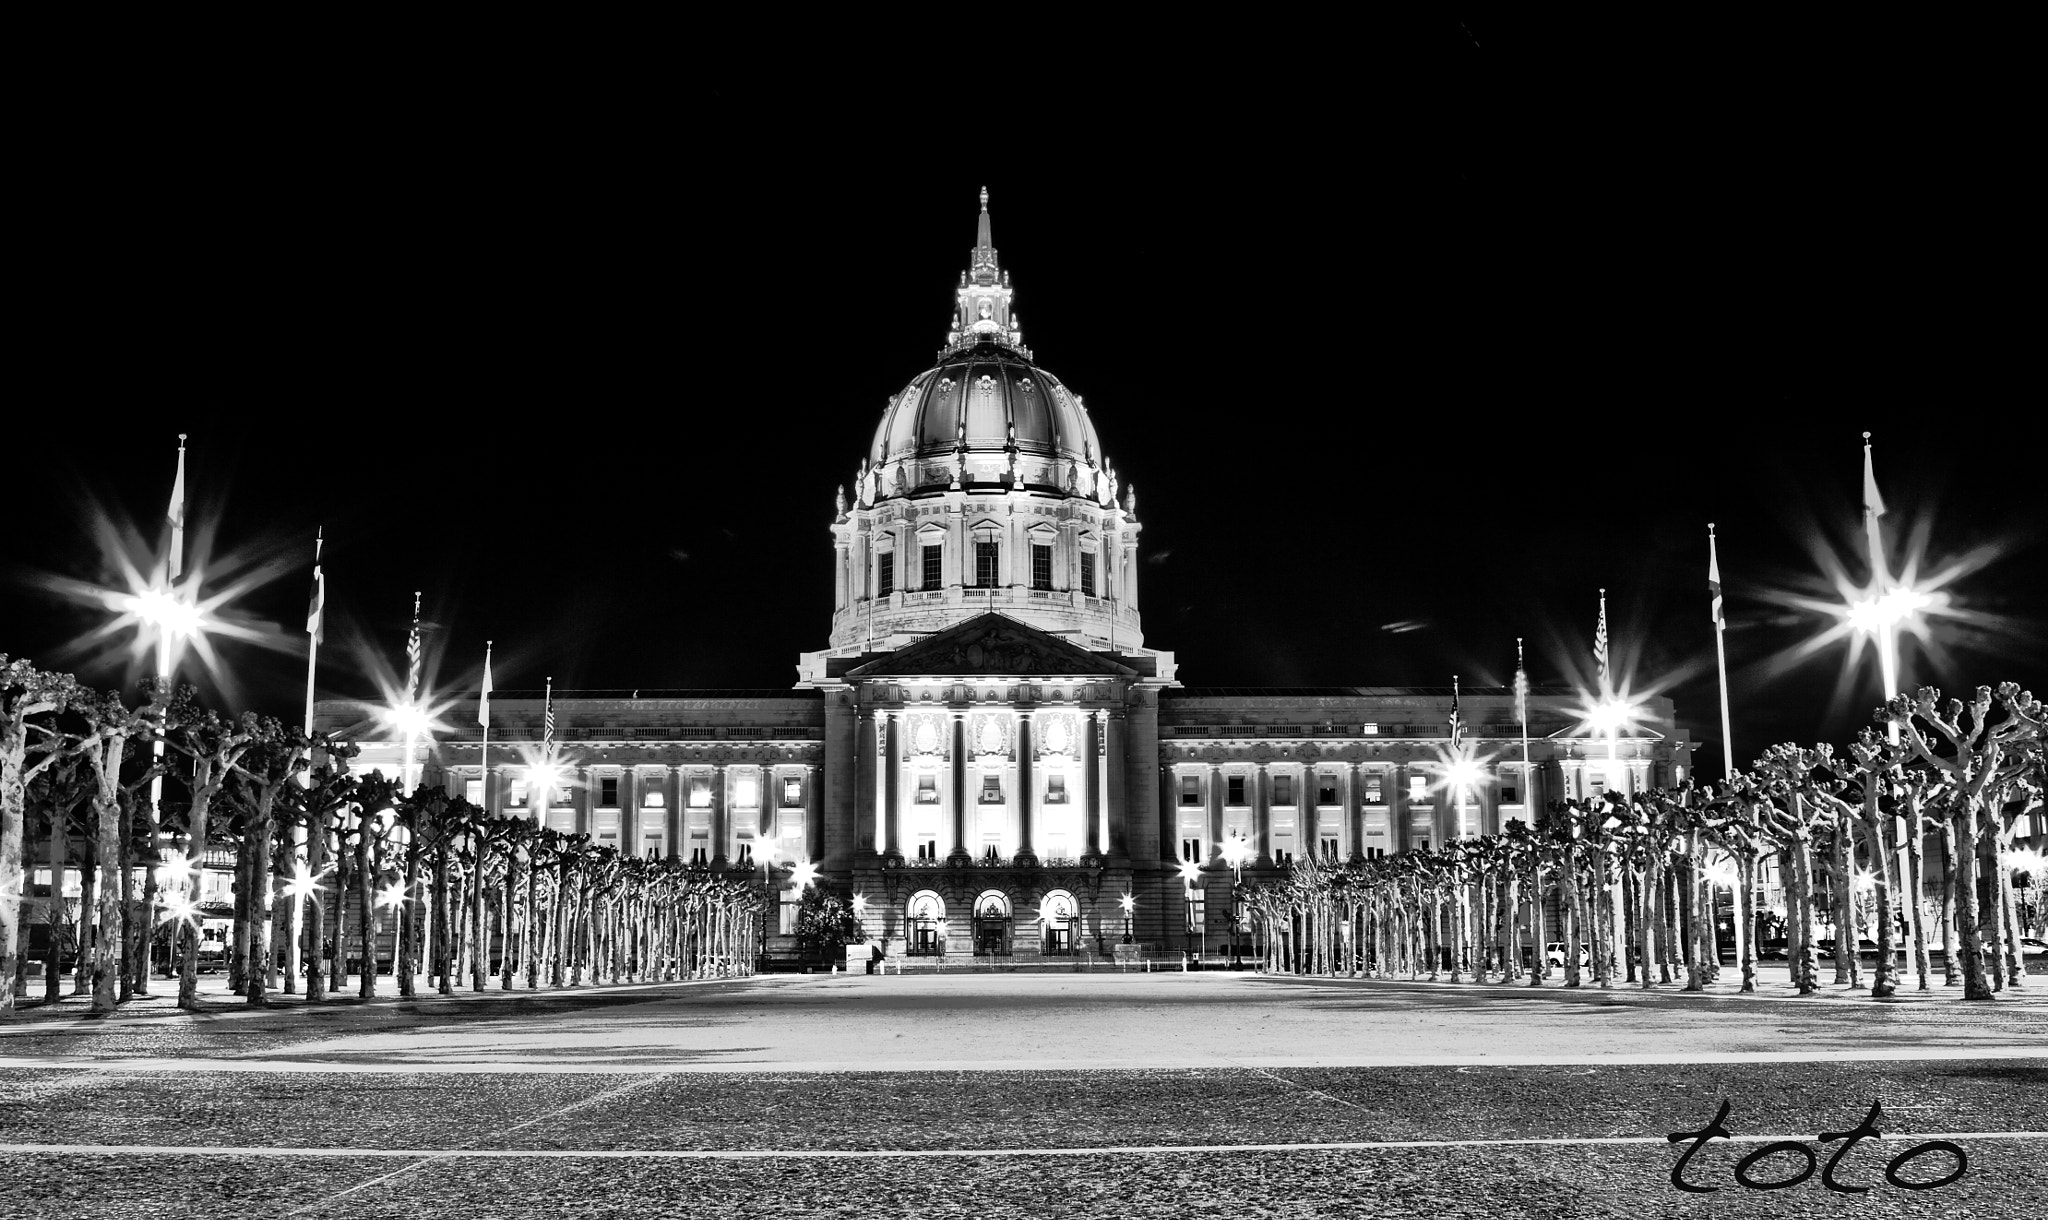 Photograph Civic Center by TOTOgraphy on 500px